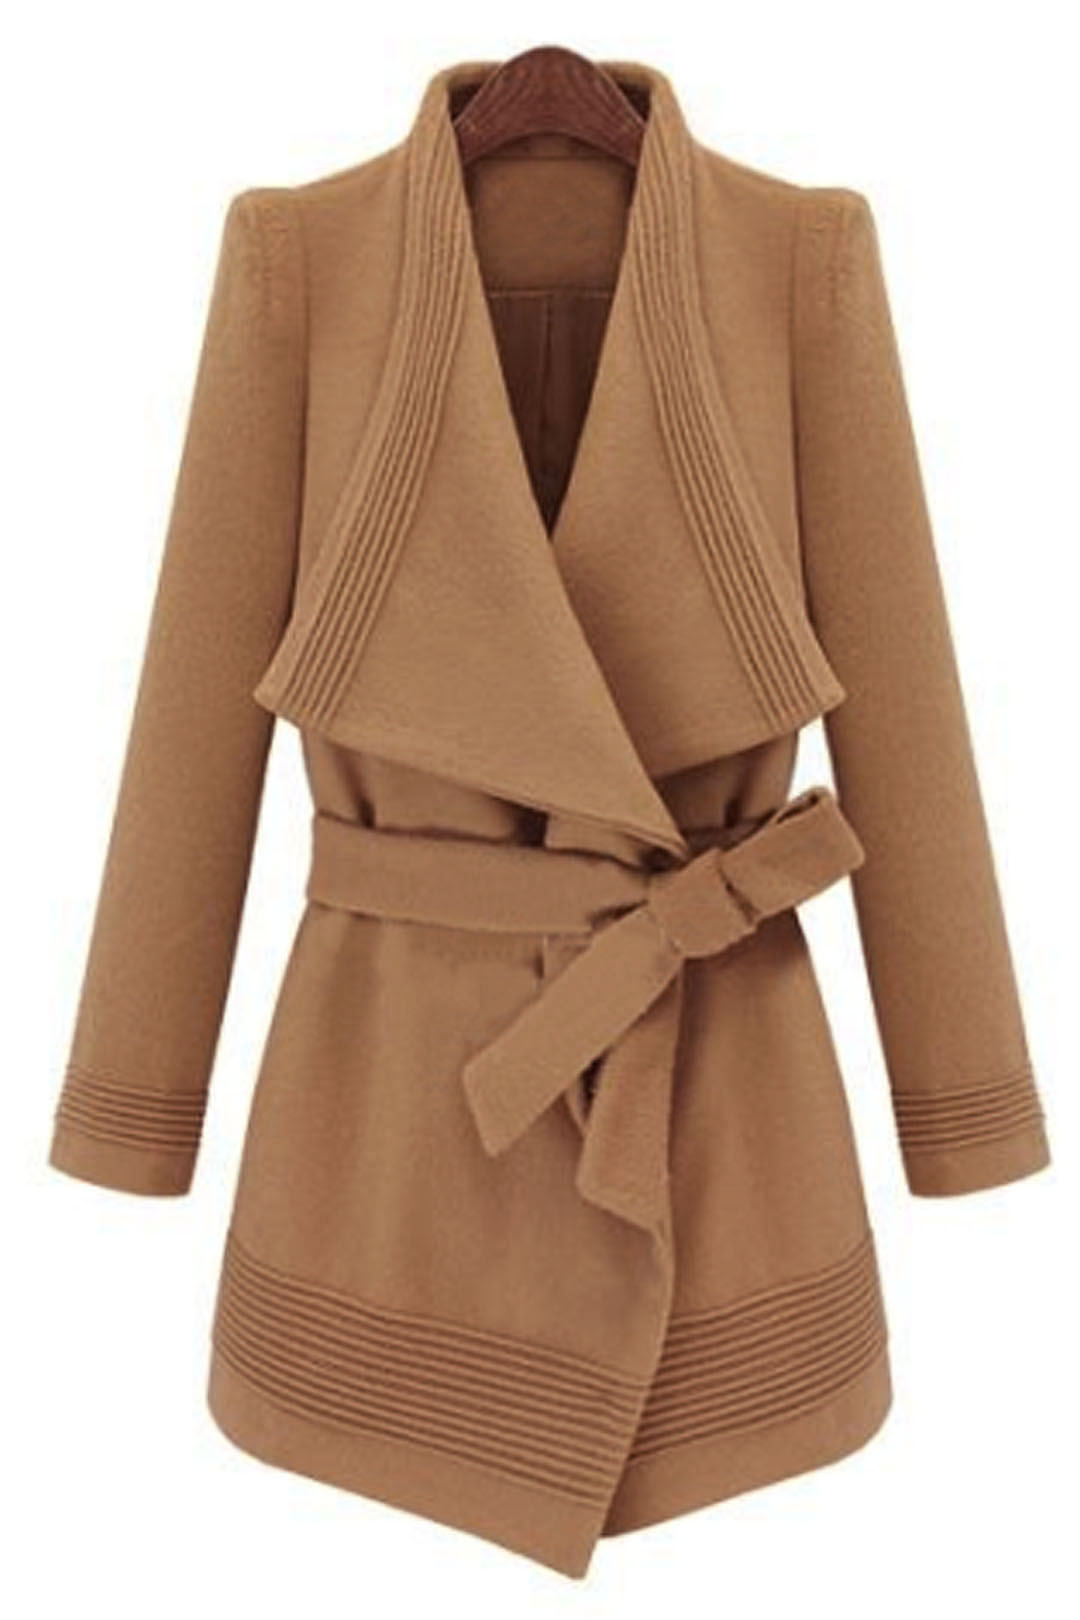 Waterfall Camel Coat with Belt